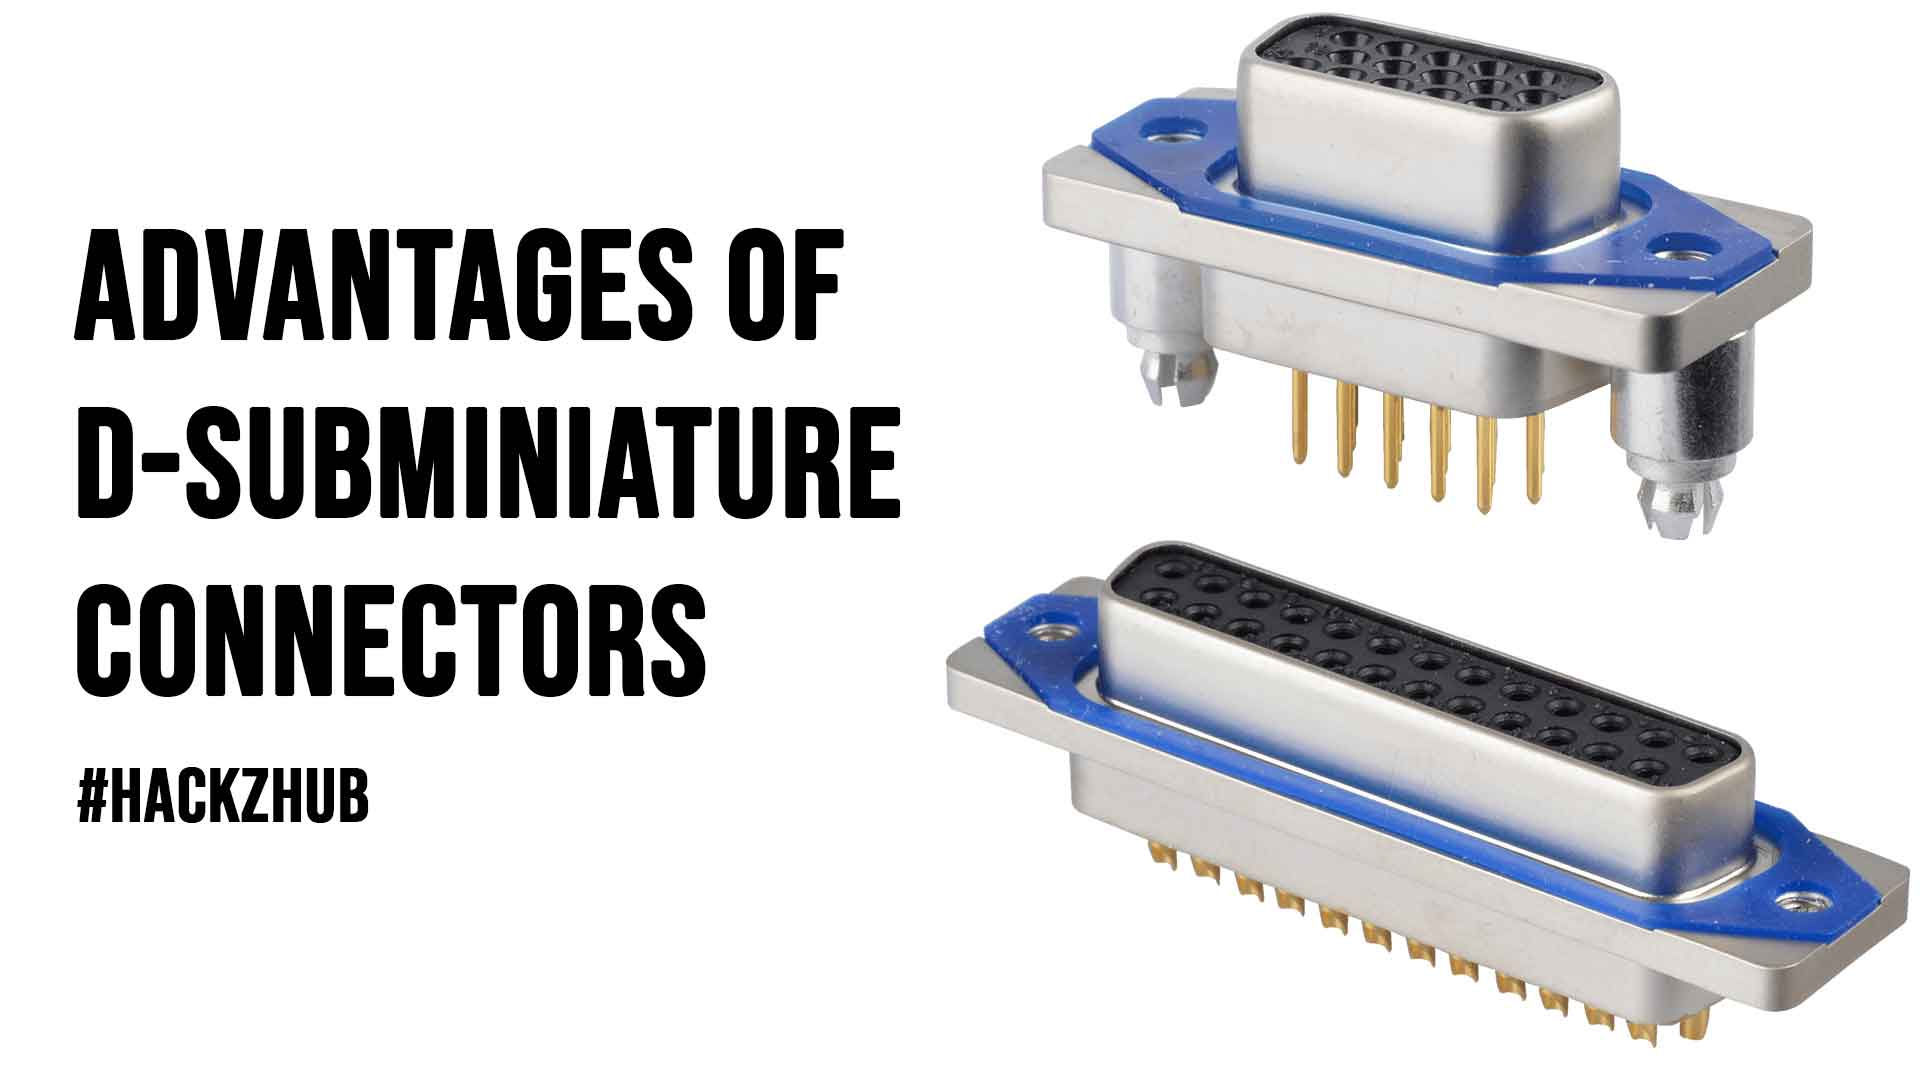 Advantages of D subminiature Connectors